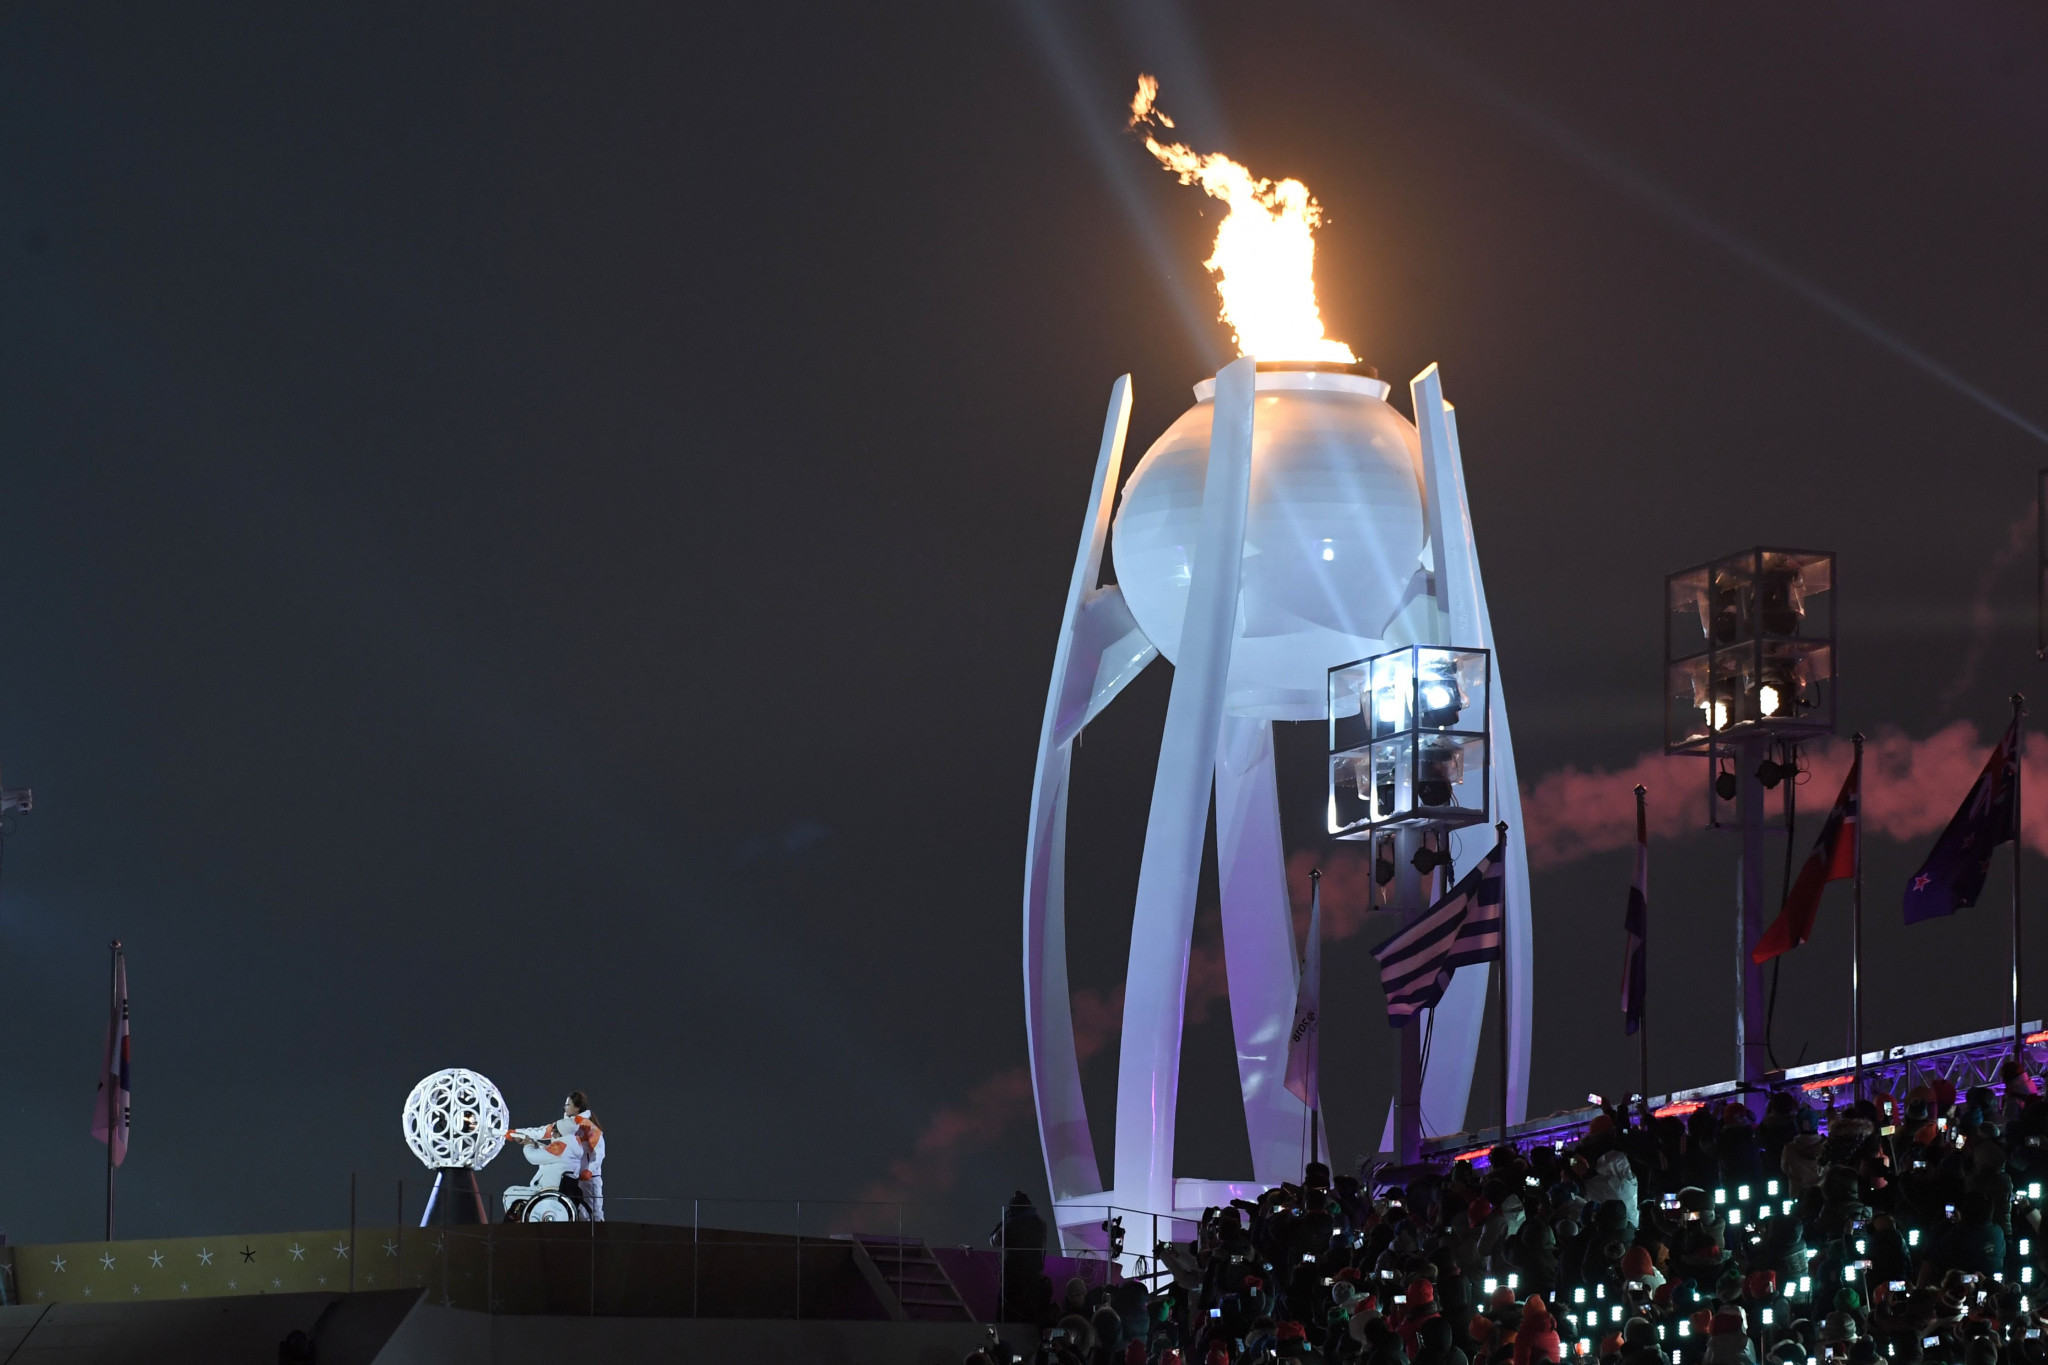 The lighting of the Paralympic Cauldron marked a fitting end to the Opening Ceremony ©Getty Images